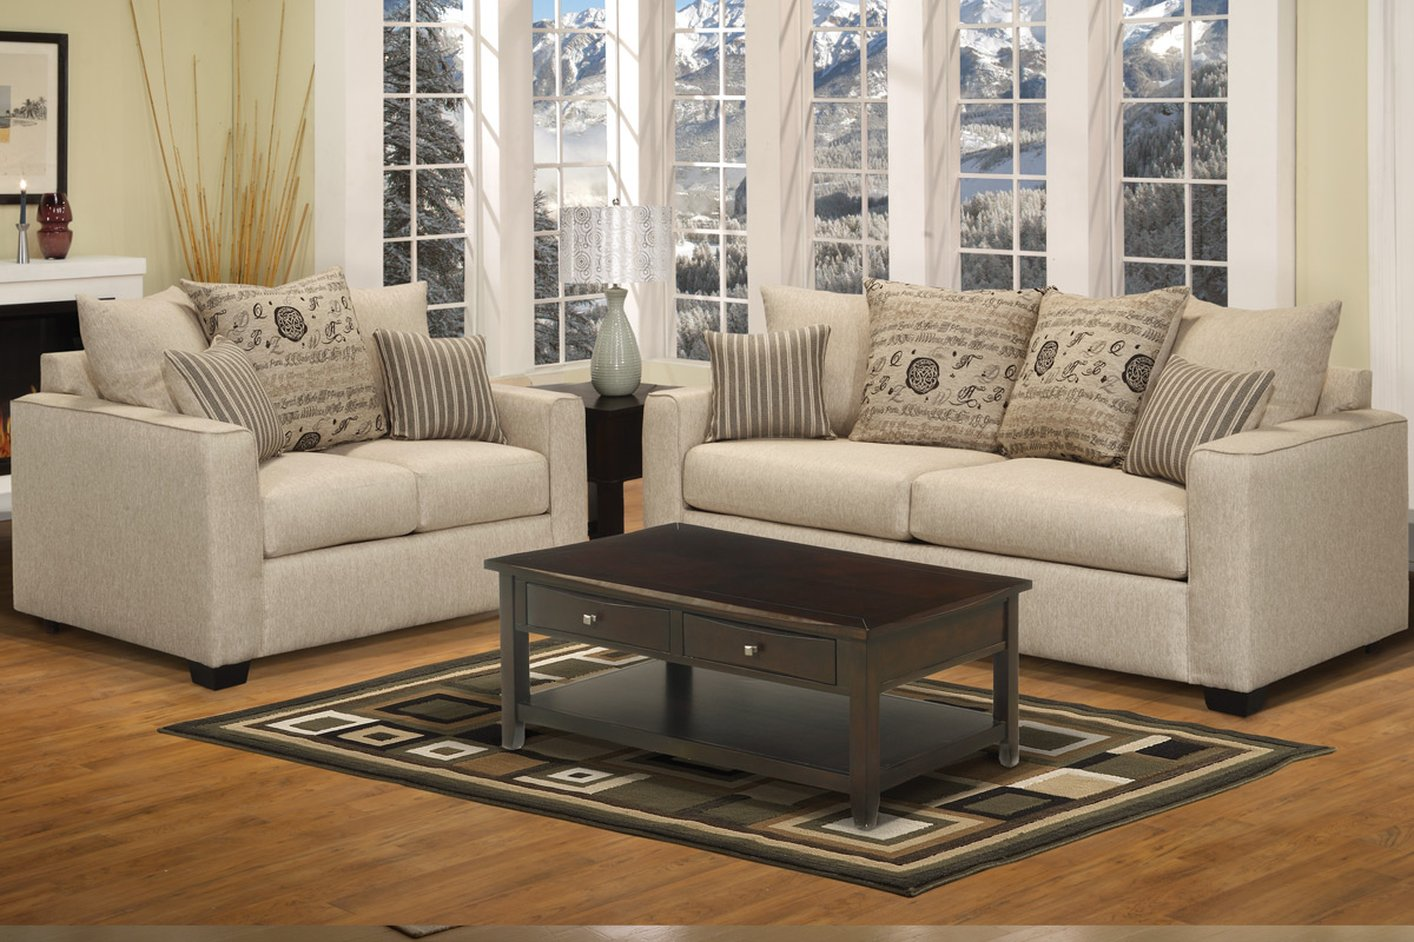 Perfect Sofa Loveseat Set Sofa Loveseat Set Furniture Outlet Los Angeles Ca Couch Loveseat Dimensions Loveseat Covers Couch houzz-03 Couch And Loveseat